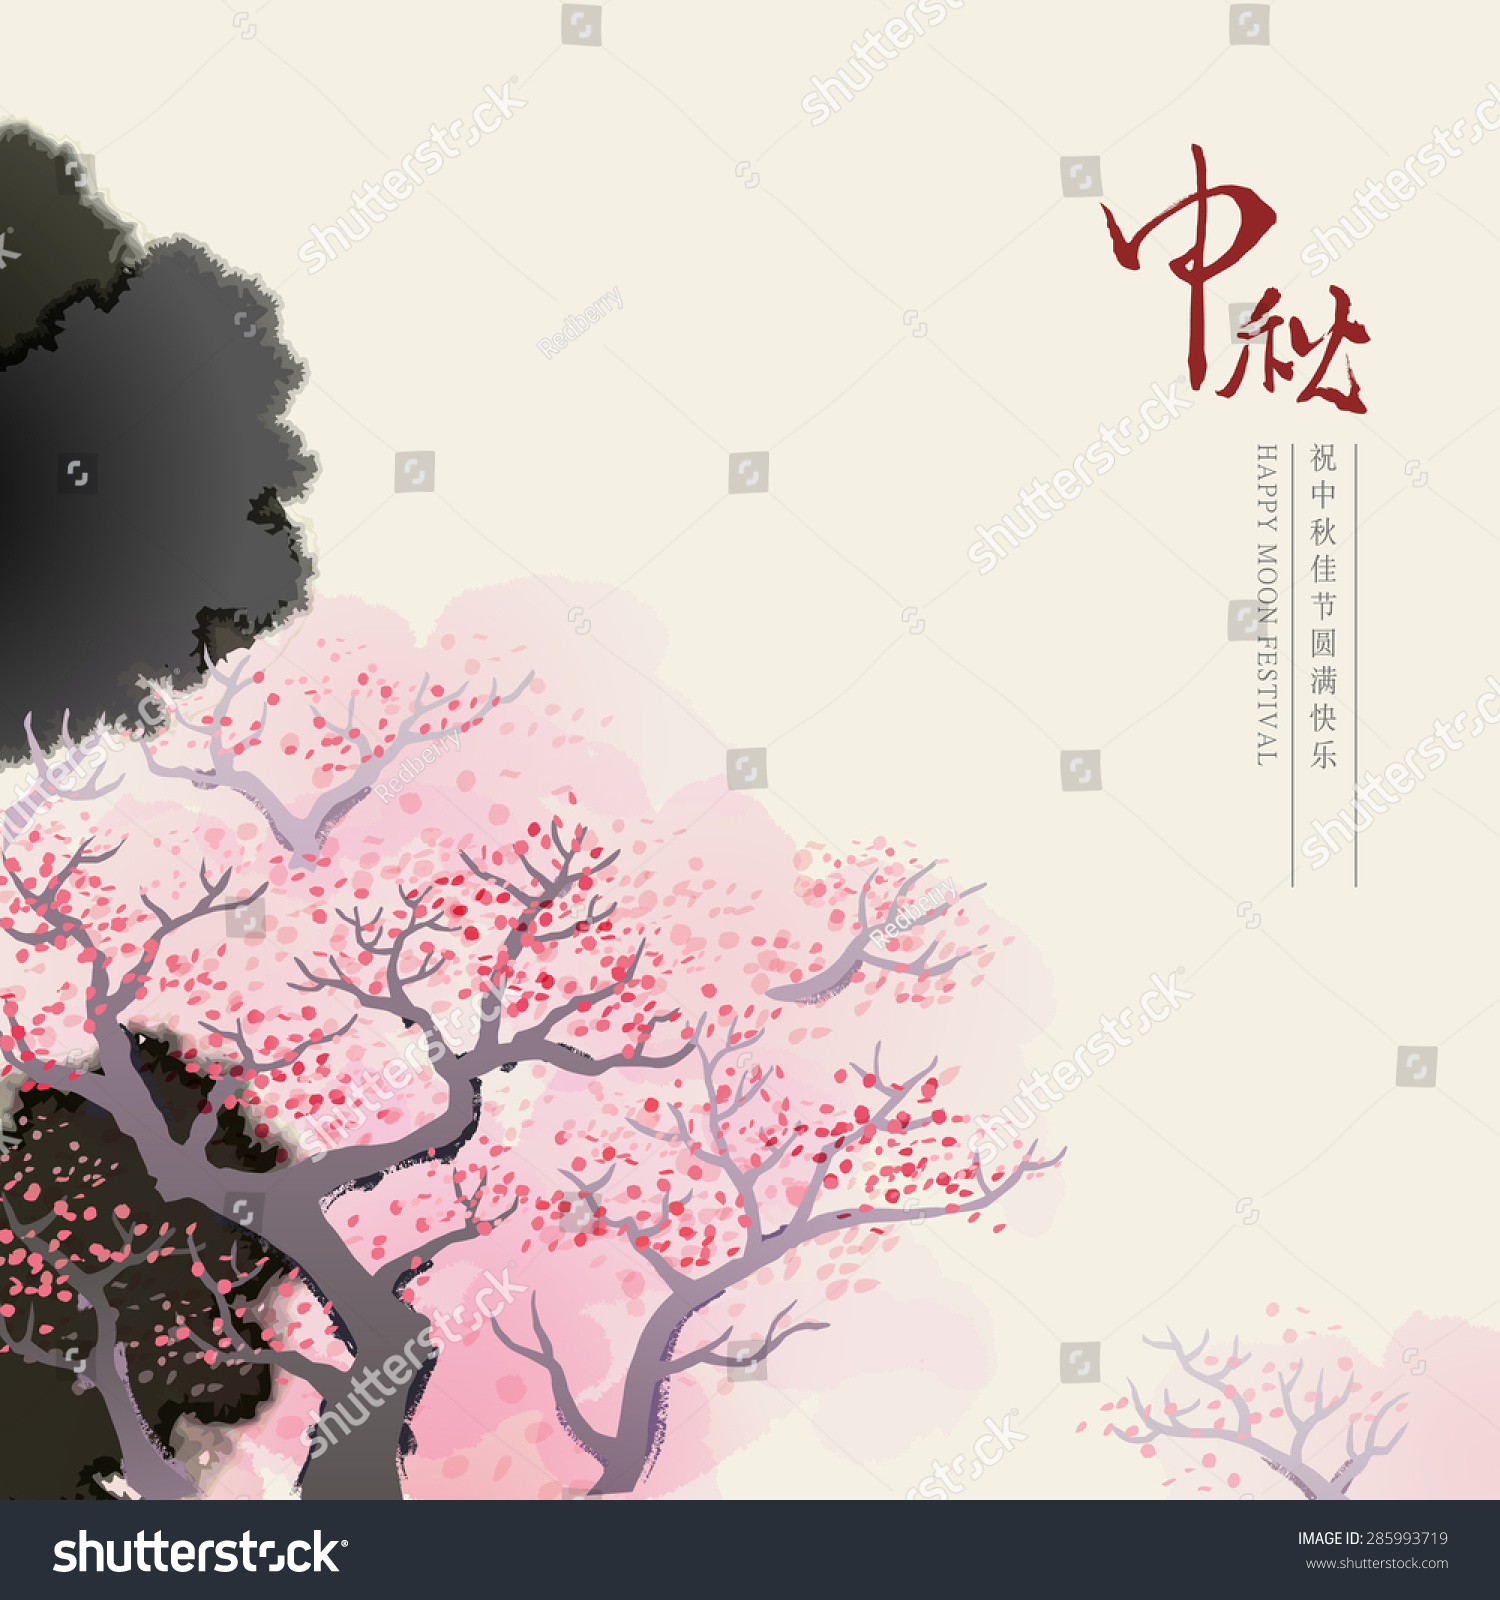 Chinese mid autumn festival graphic design stock vector 285993719 chinese mid autumn festival graphic design chinese character zhong qiu mid autumn kristyandbryce Choice Image